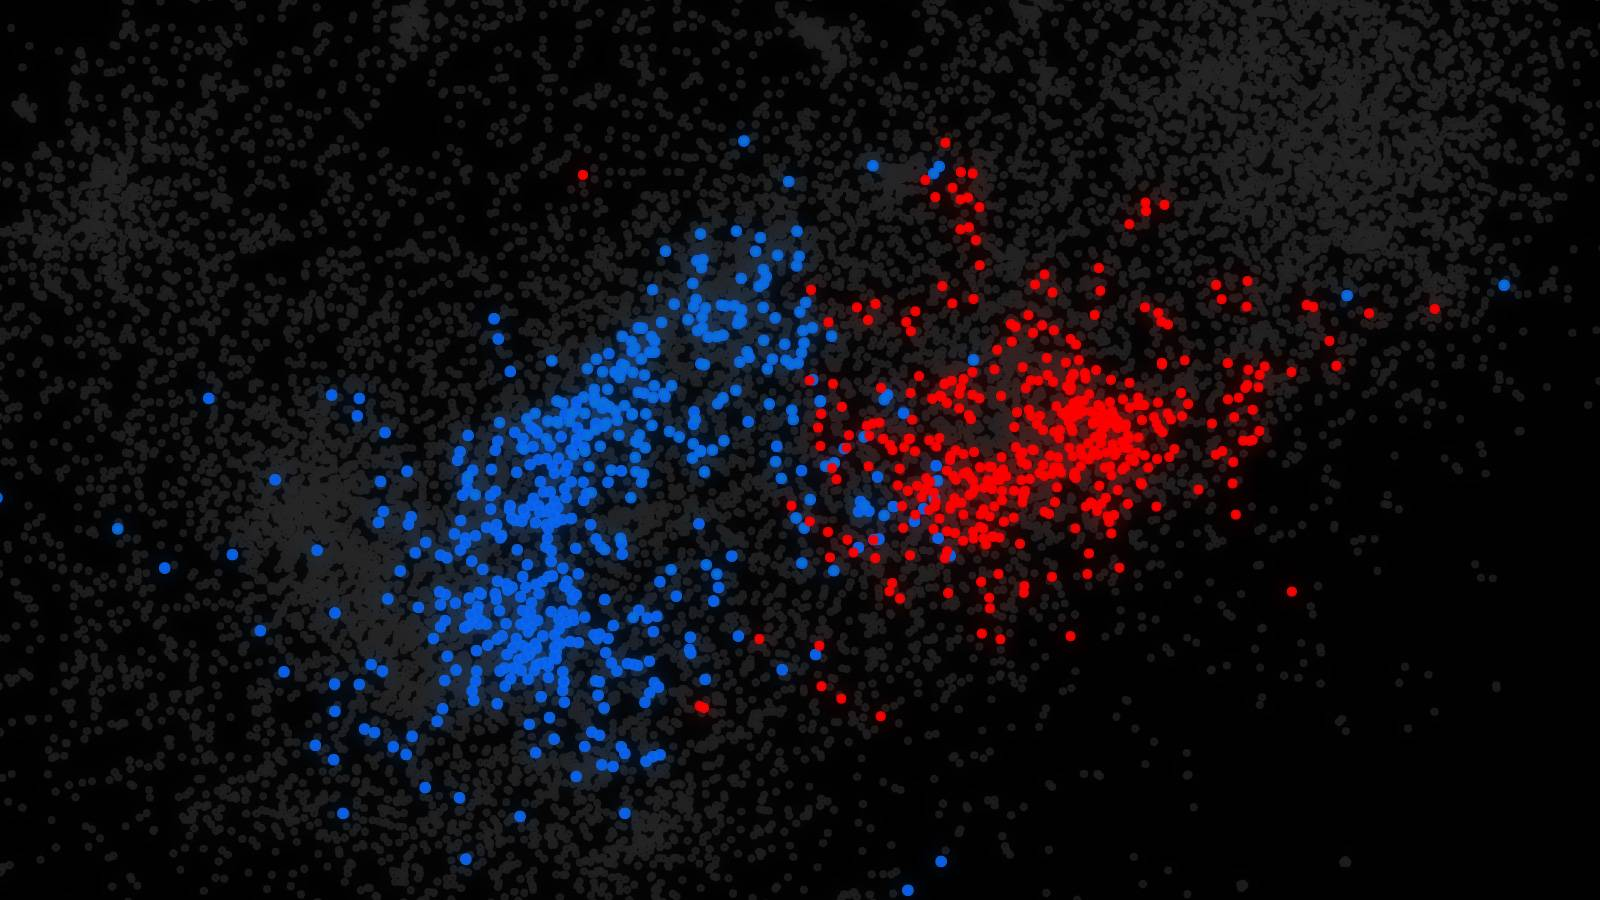 Cloud graph with red and blue dots.